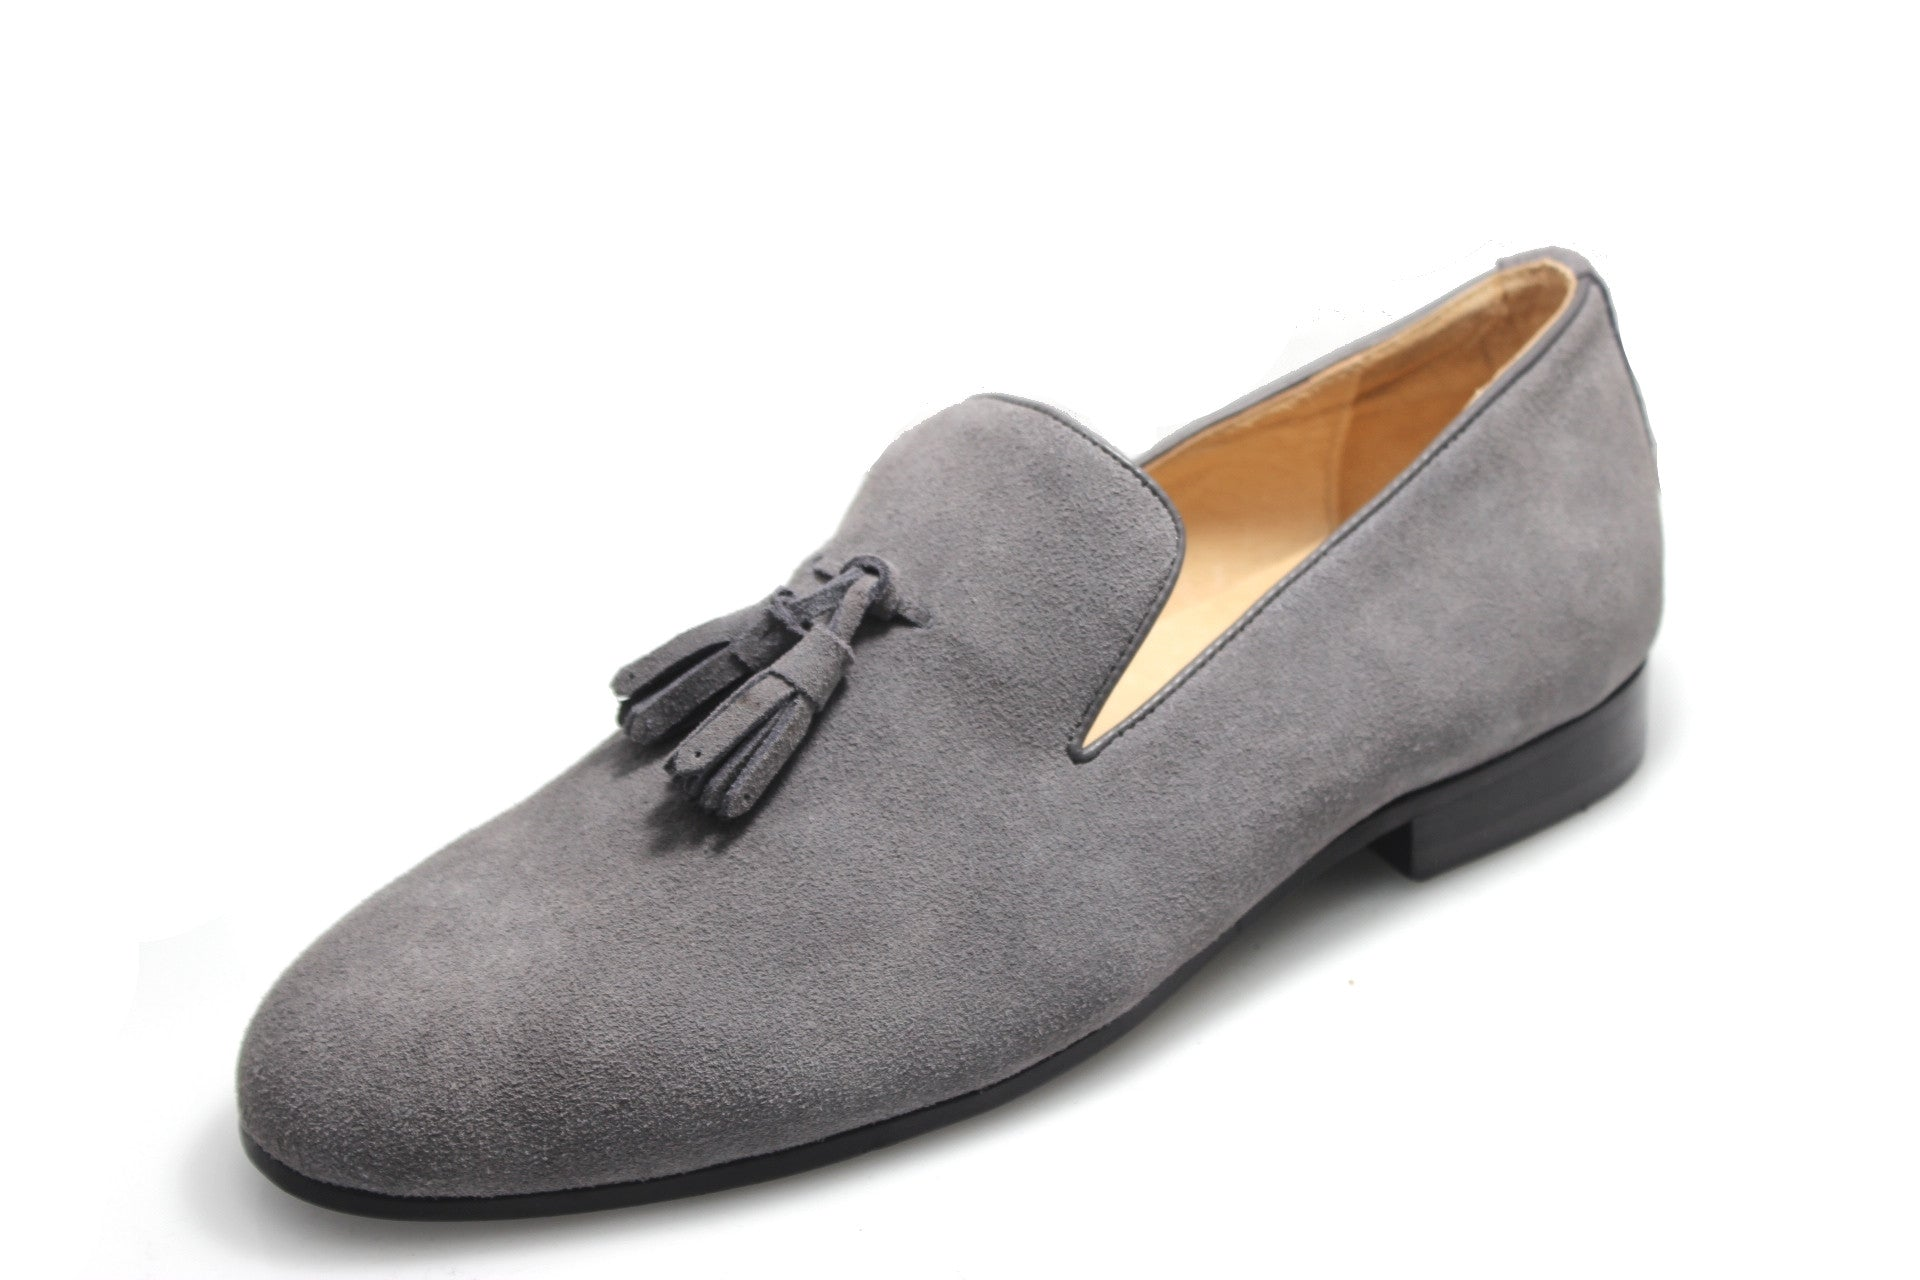 Smythe & Digby Men's Gray Suede Tassel Loafers